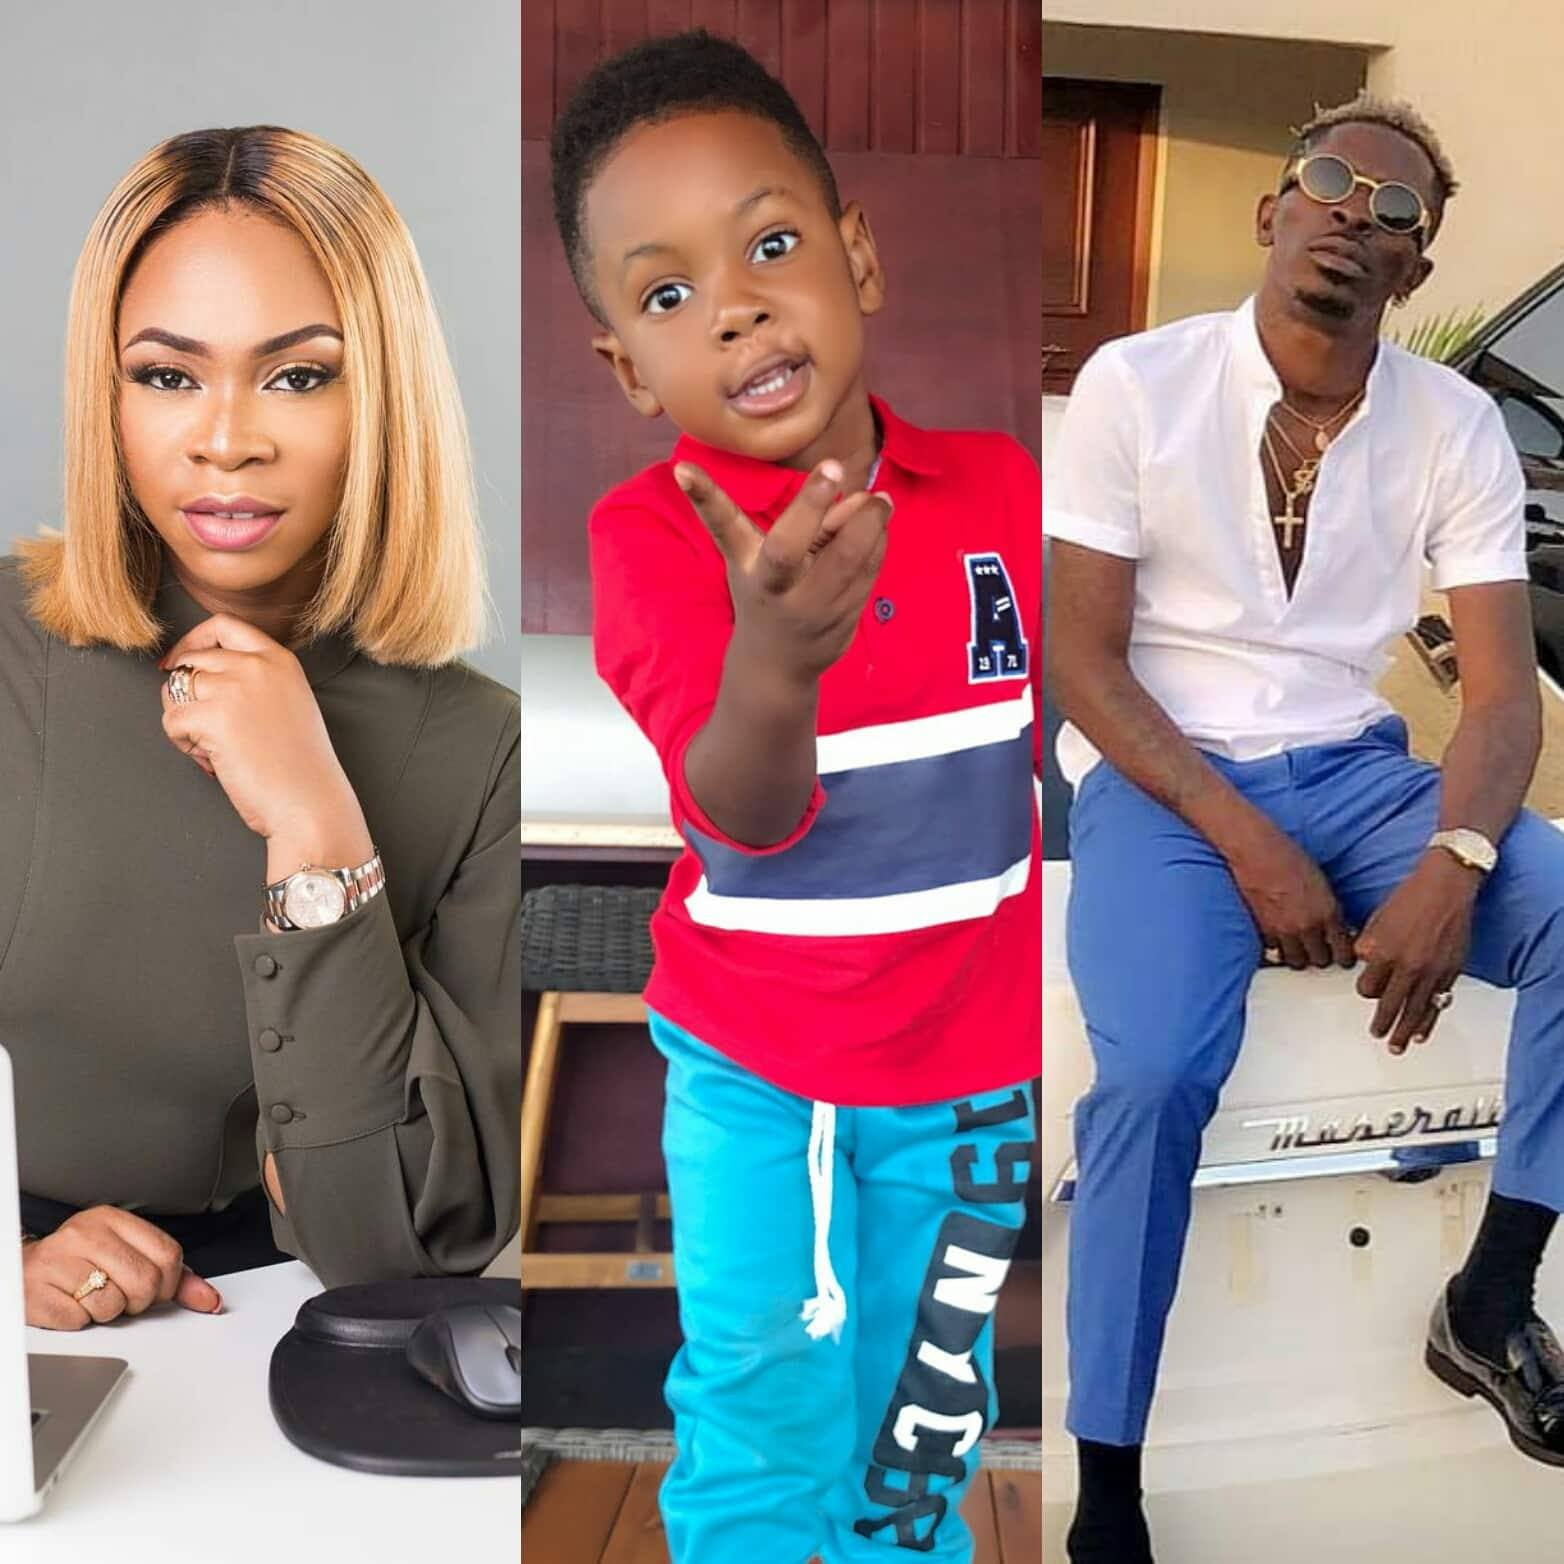 Shatta Michy and I love you, Shatta Wale tells son on his birthday